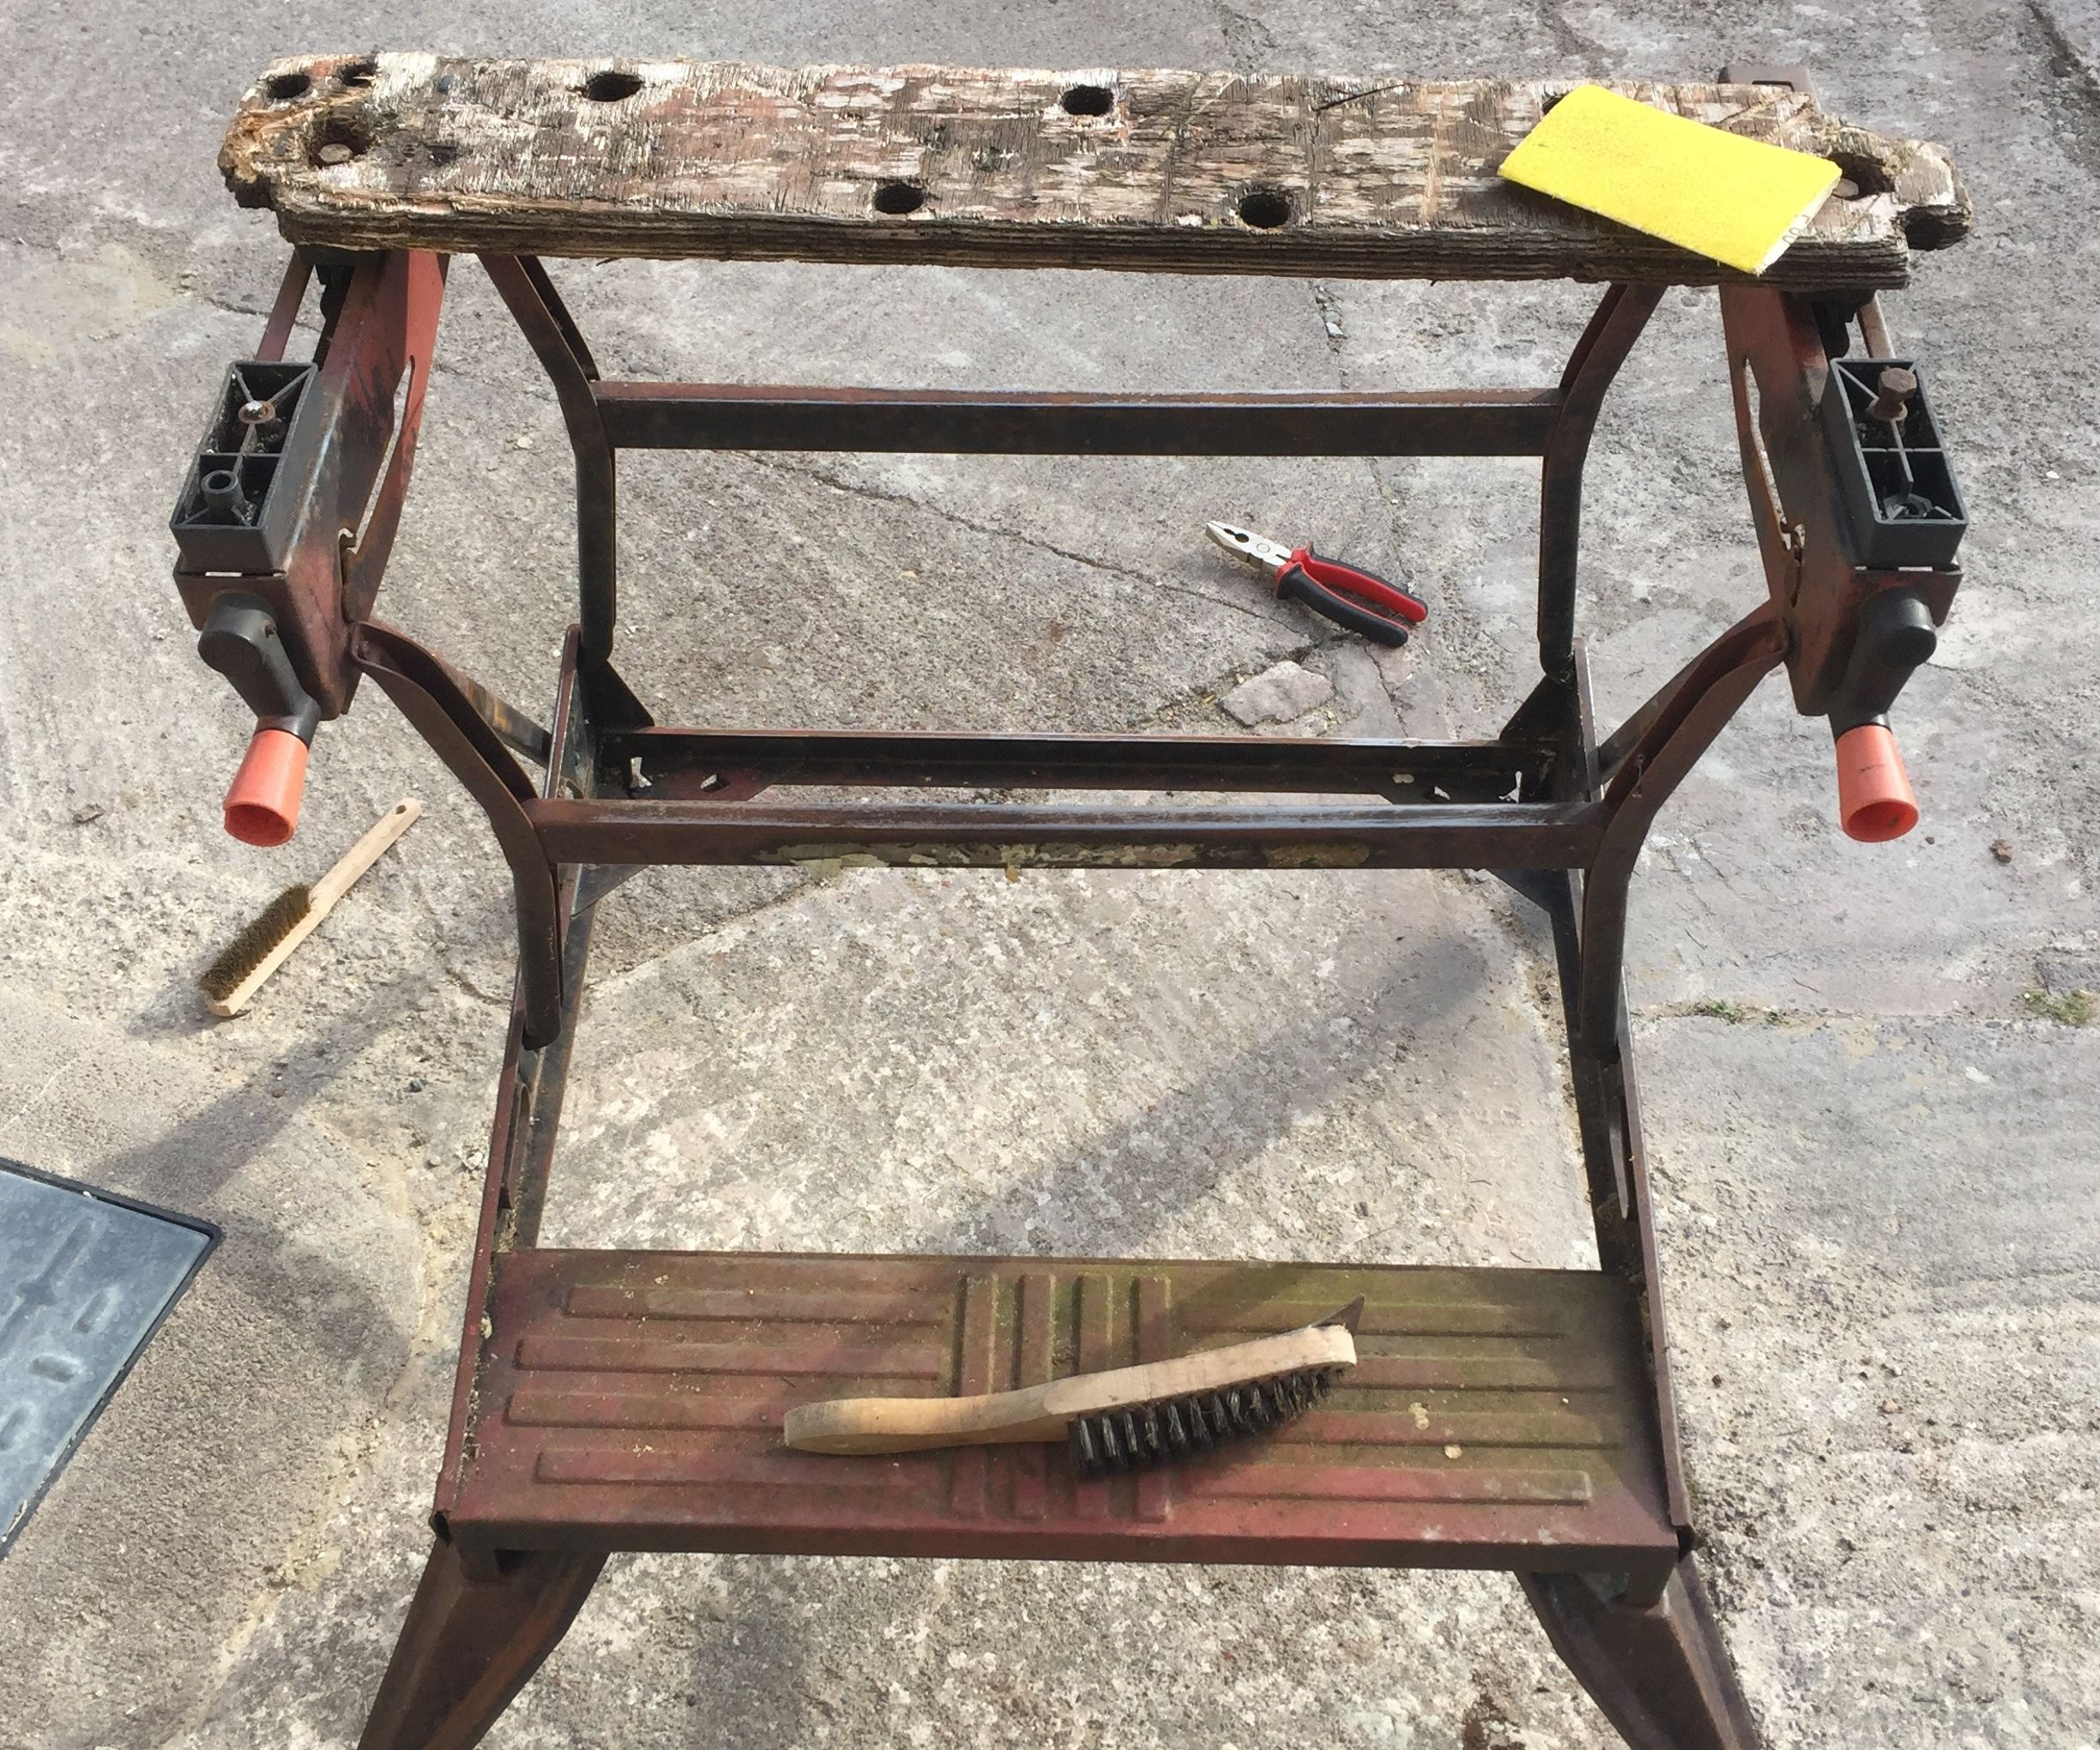 Restore an Old Workmate Bench